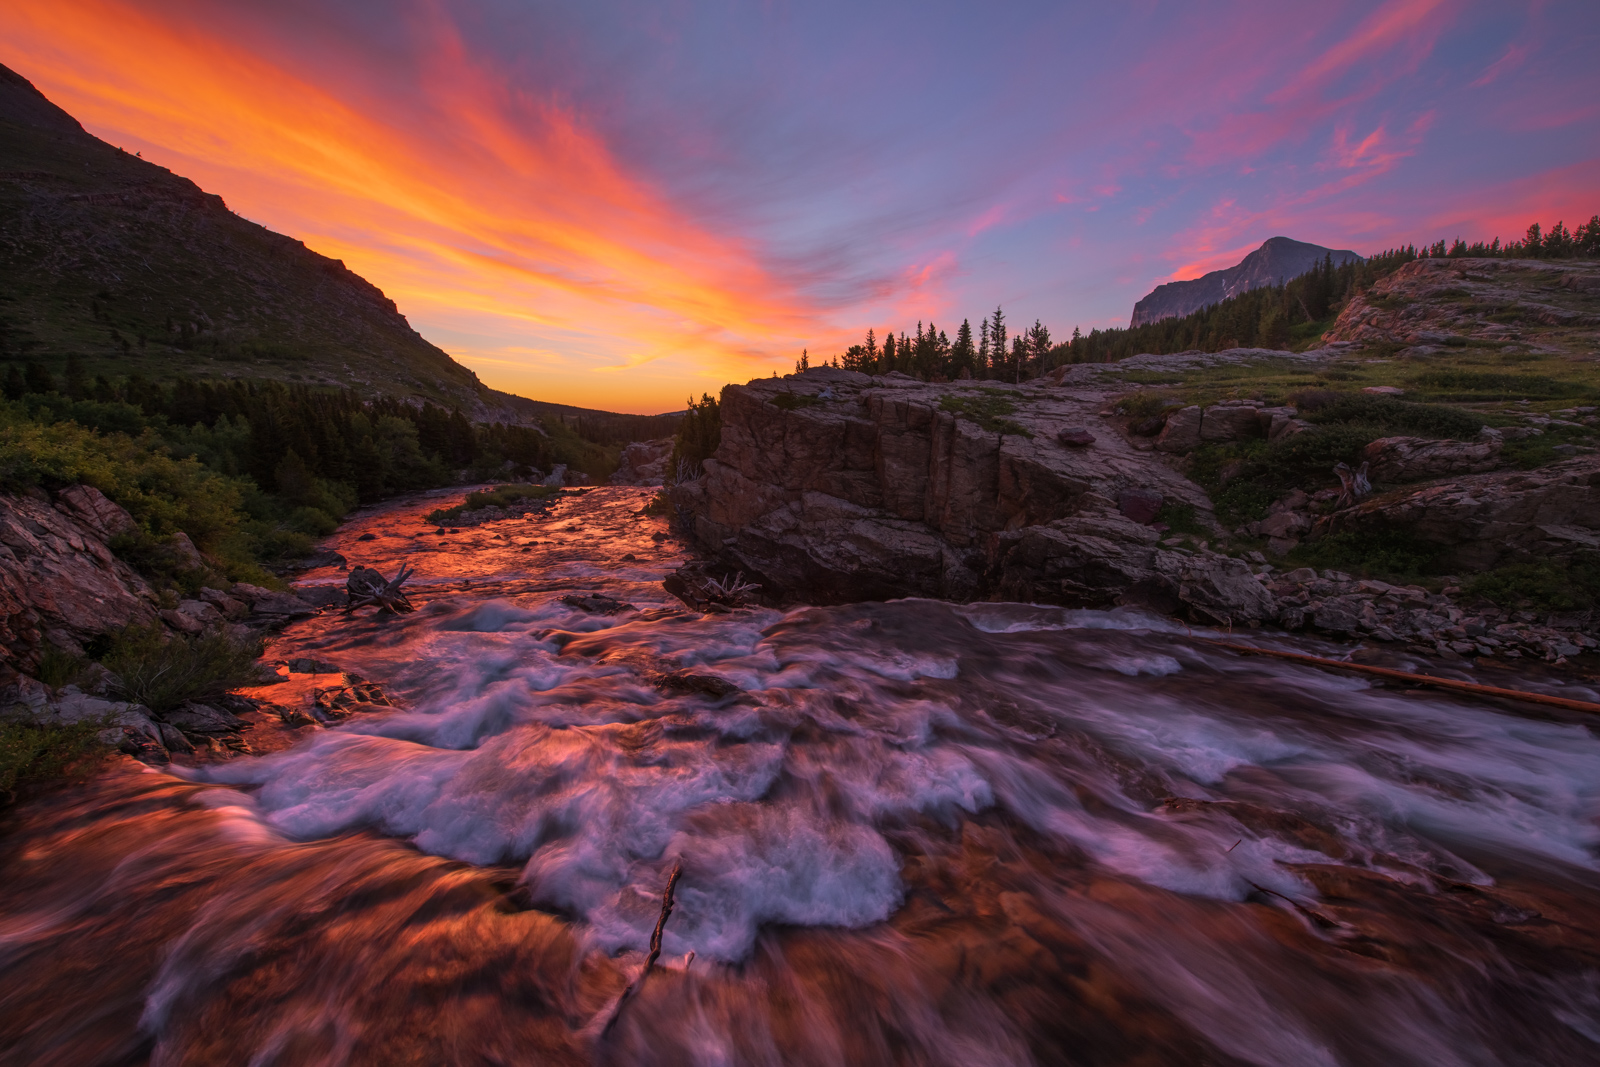 A fiery summer sunrise over the Swiftcurrent River, Glacier National Park, Montana